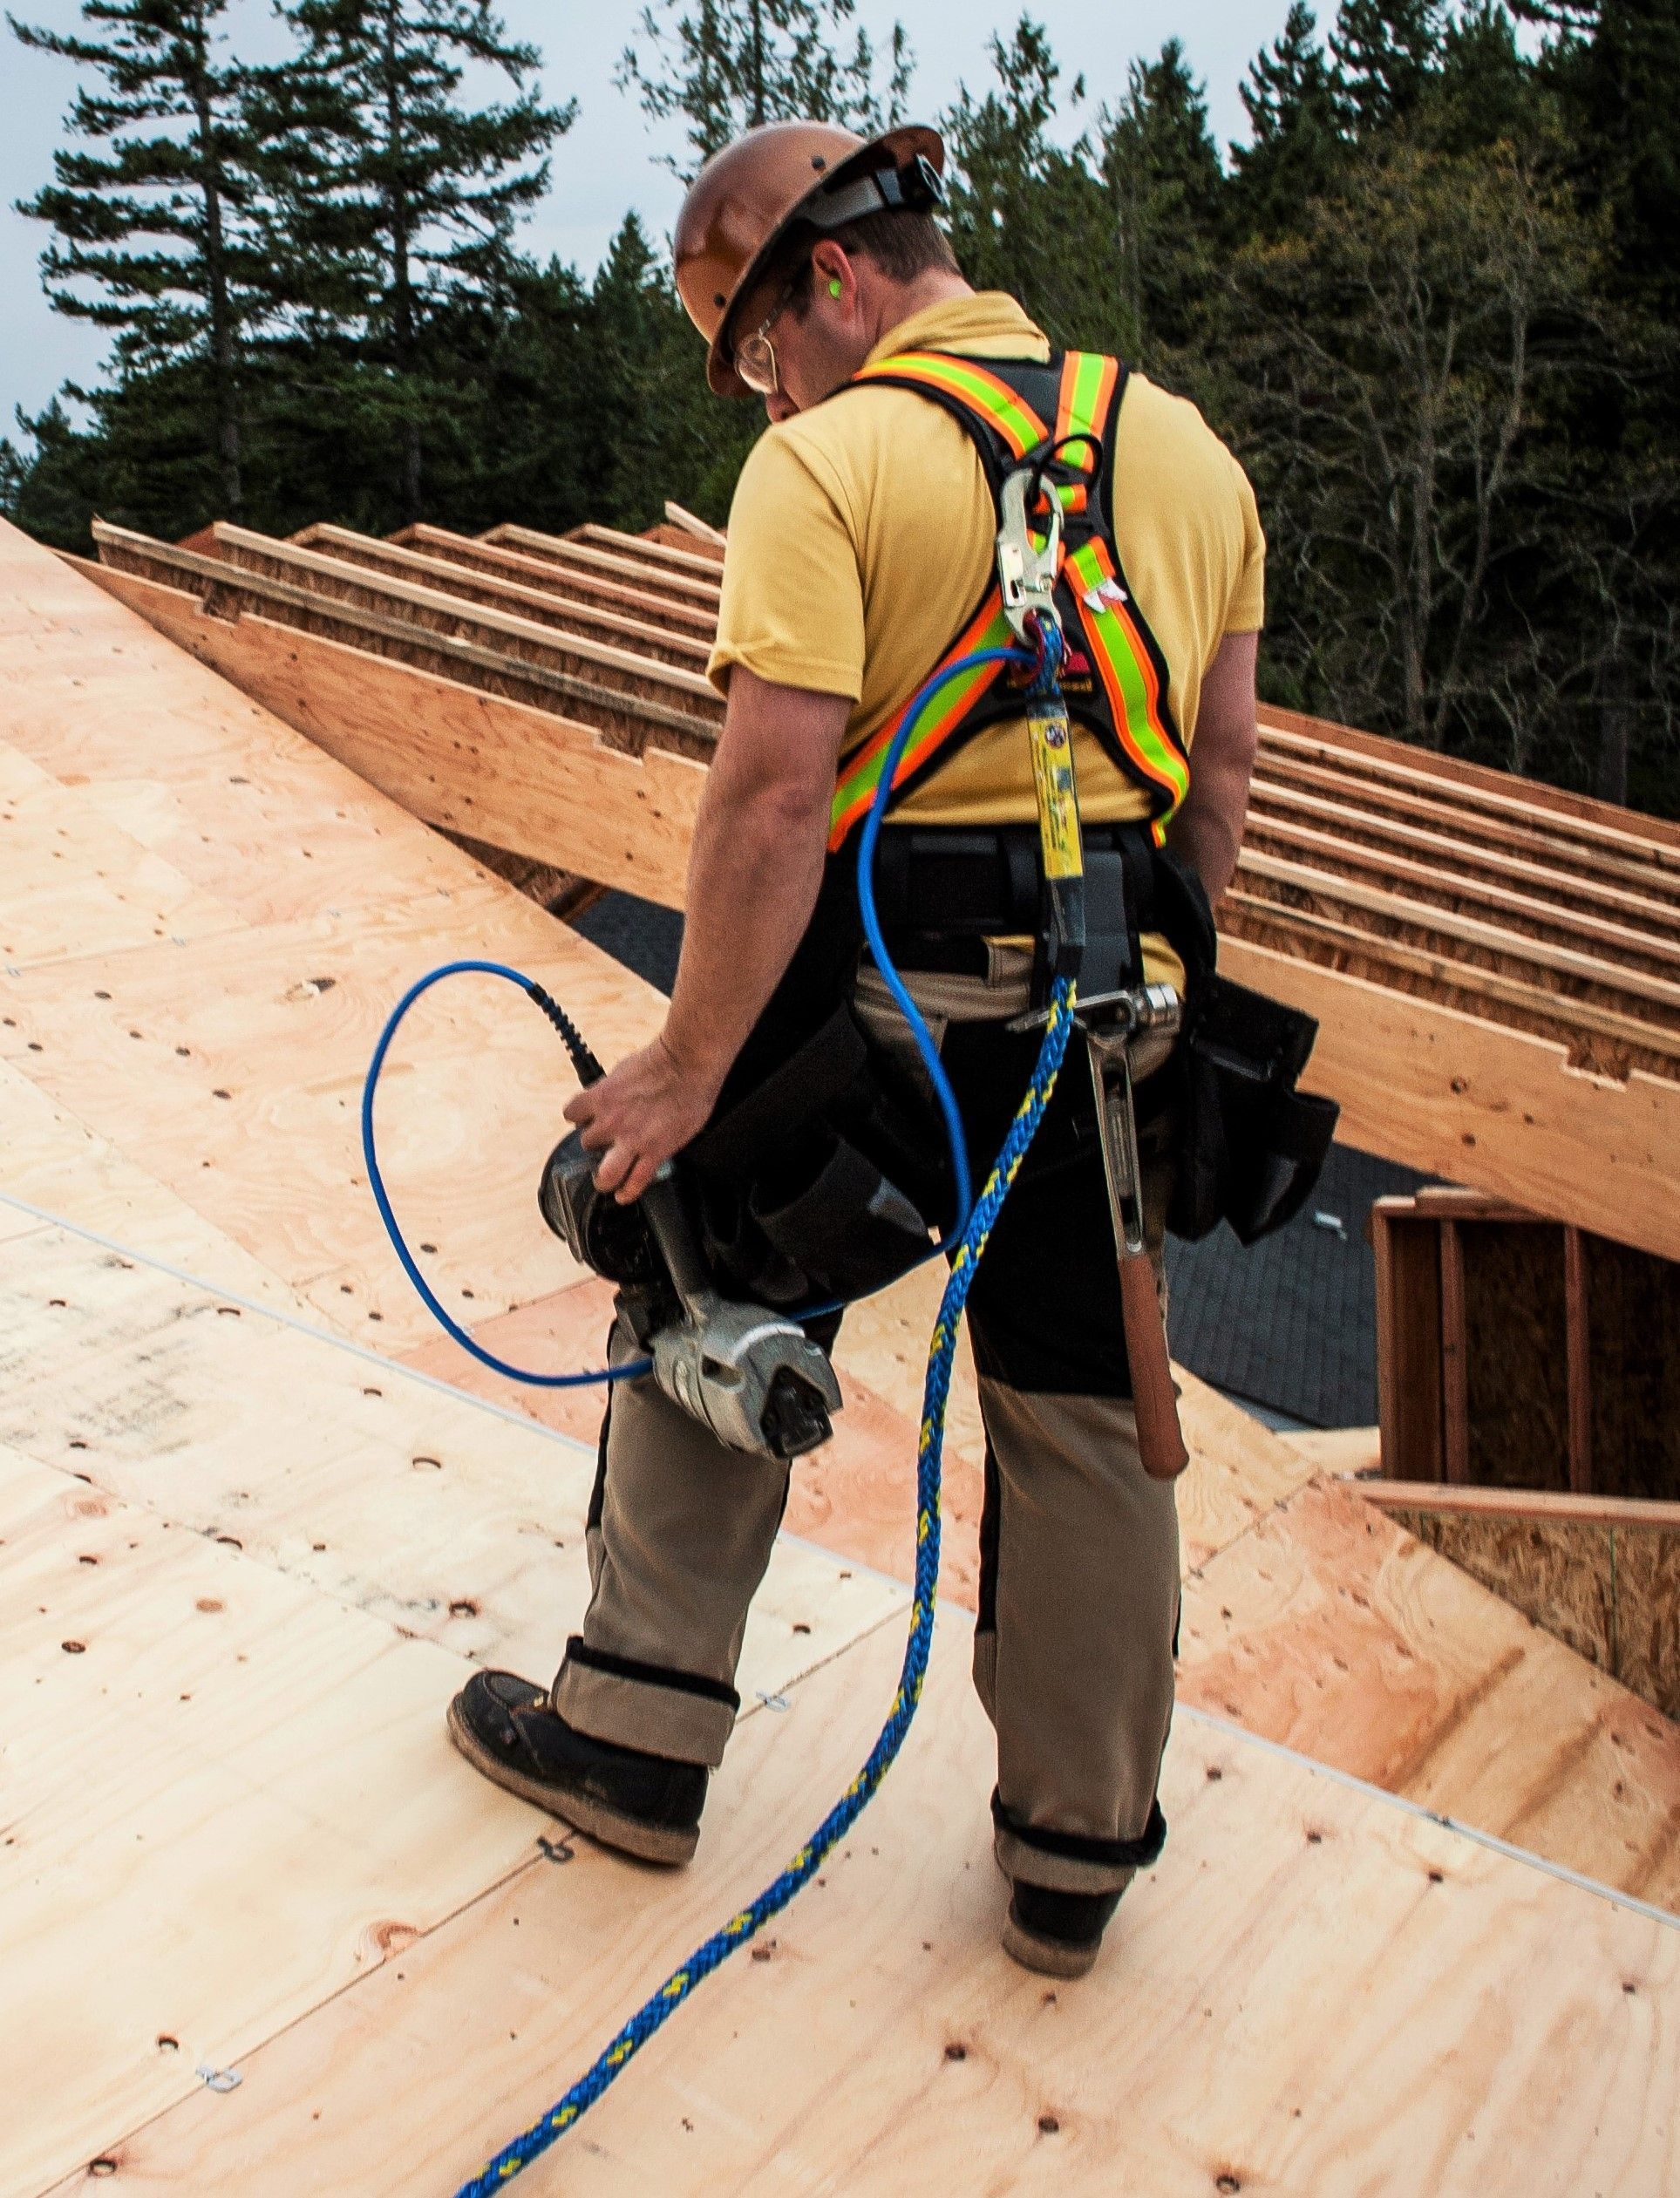 Pin on Residential Construction Fall Protection Solutions